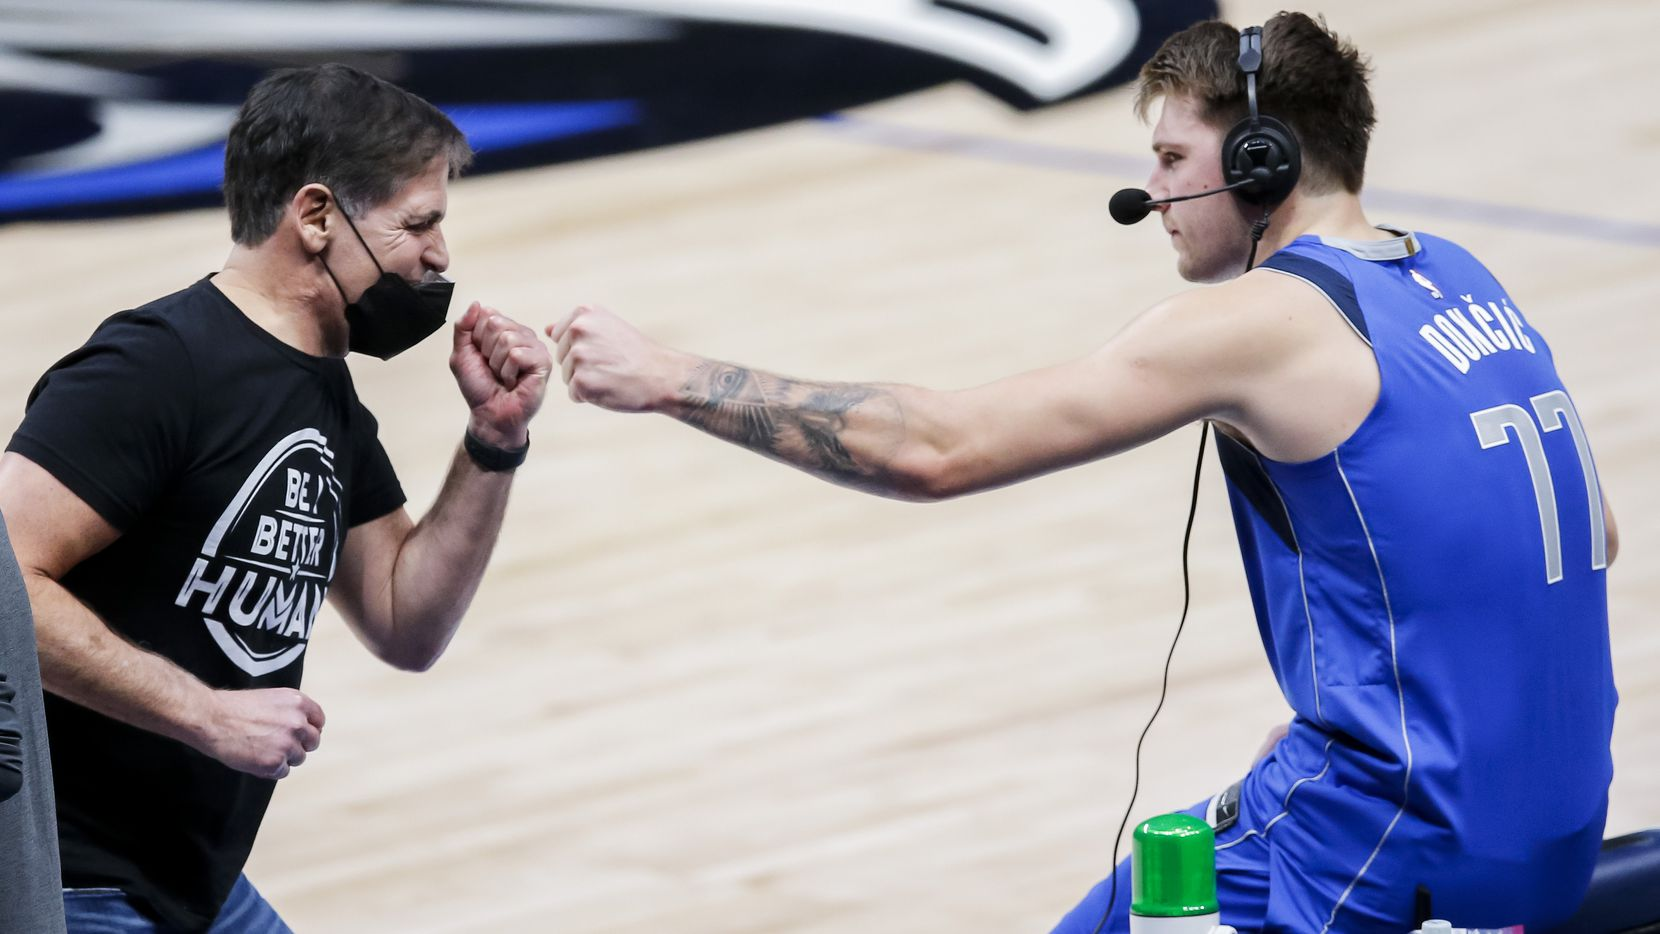 Dallas Mavericks owner Mark Cuban fist bumps guard Luka Doncic (77) after a 118-117 win over the Atlanta Hawks in an NBA basketball game in Dallas, Wednesday, February 10, 2021.